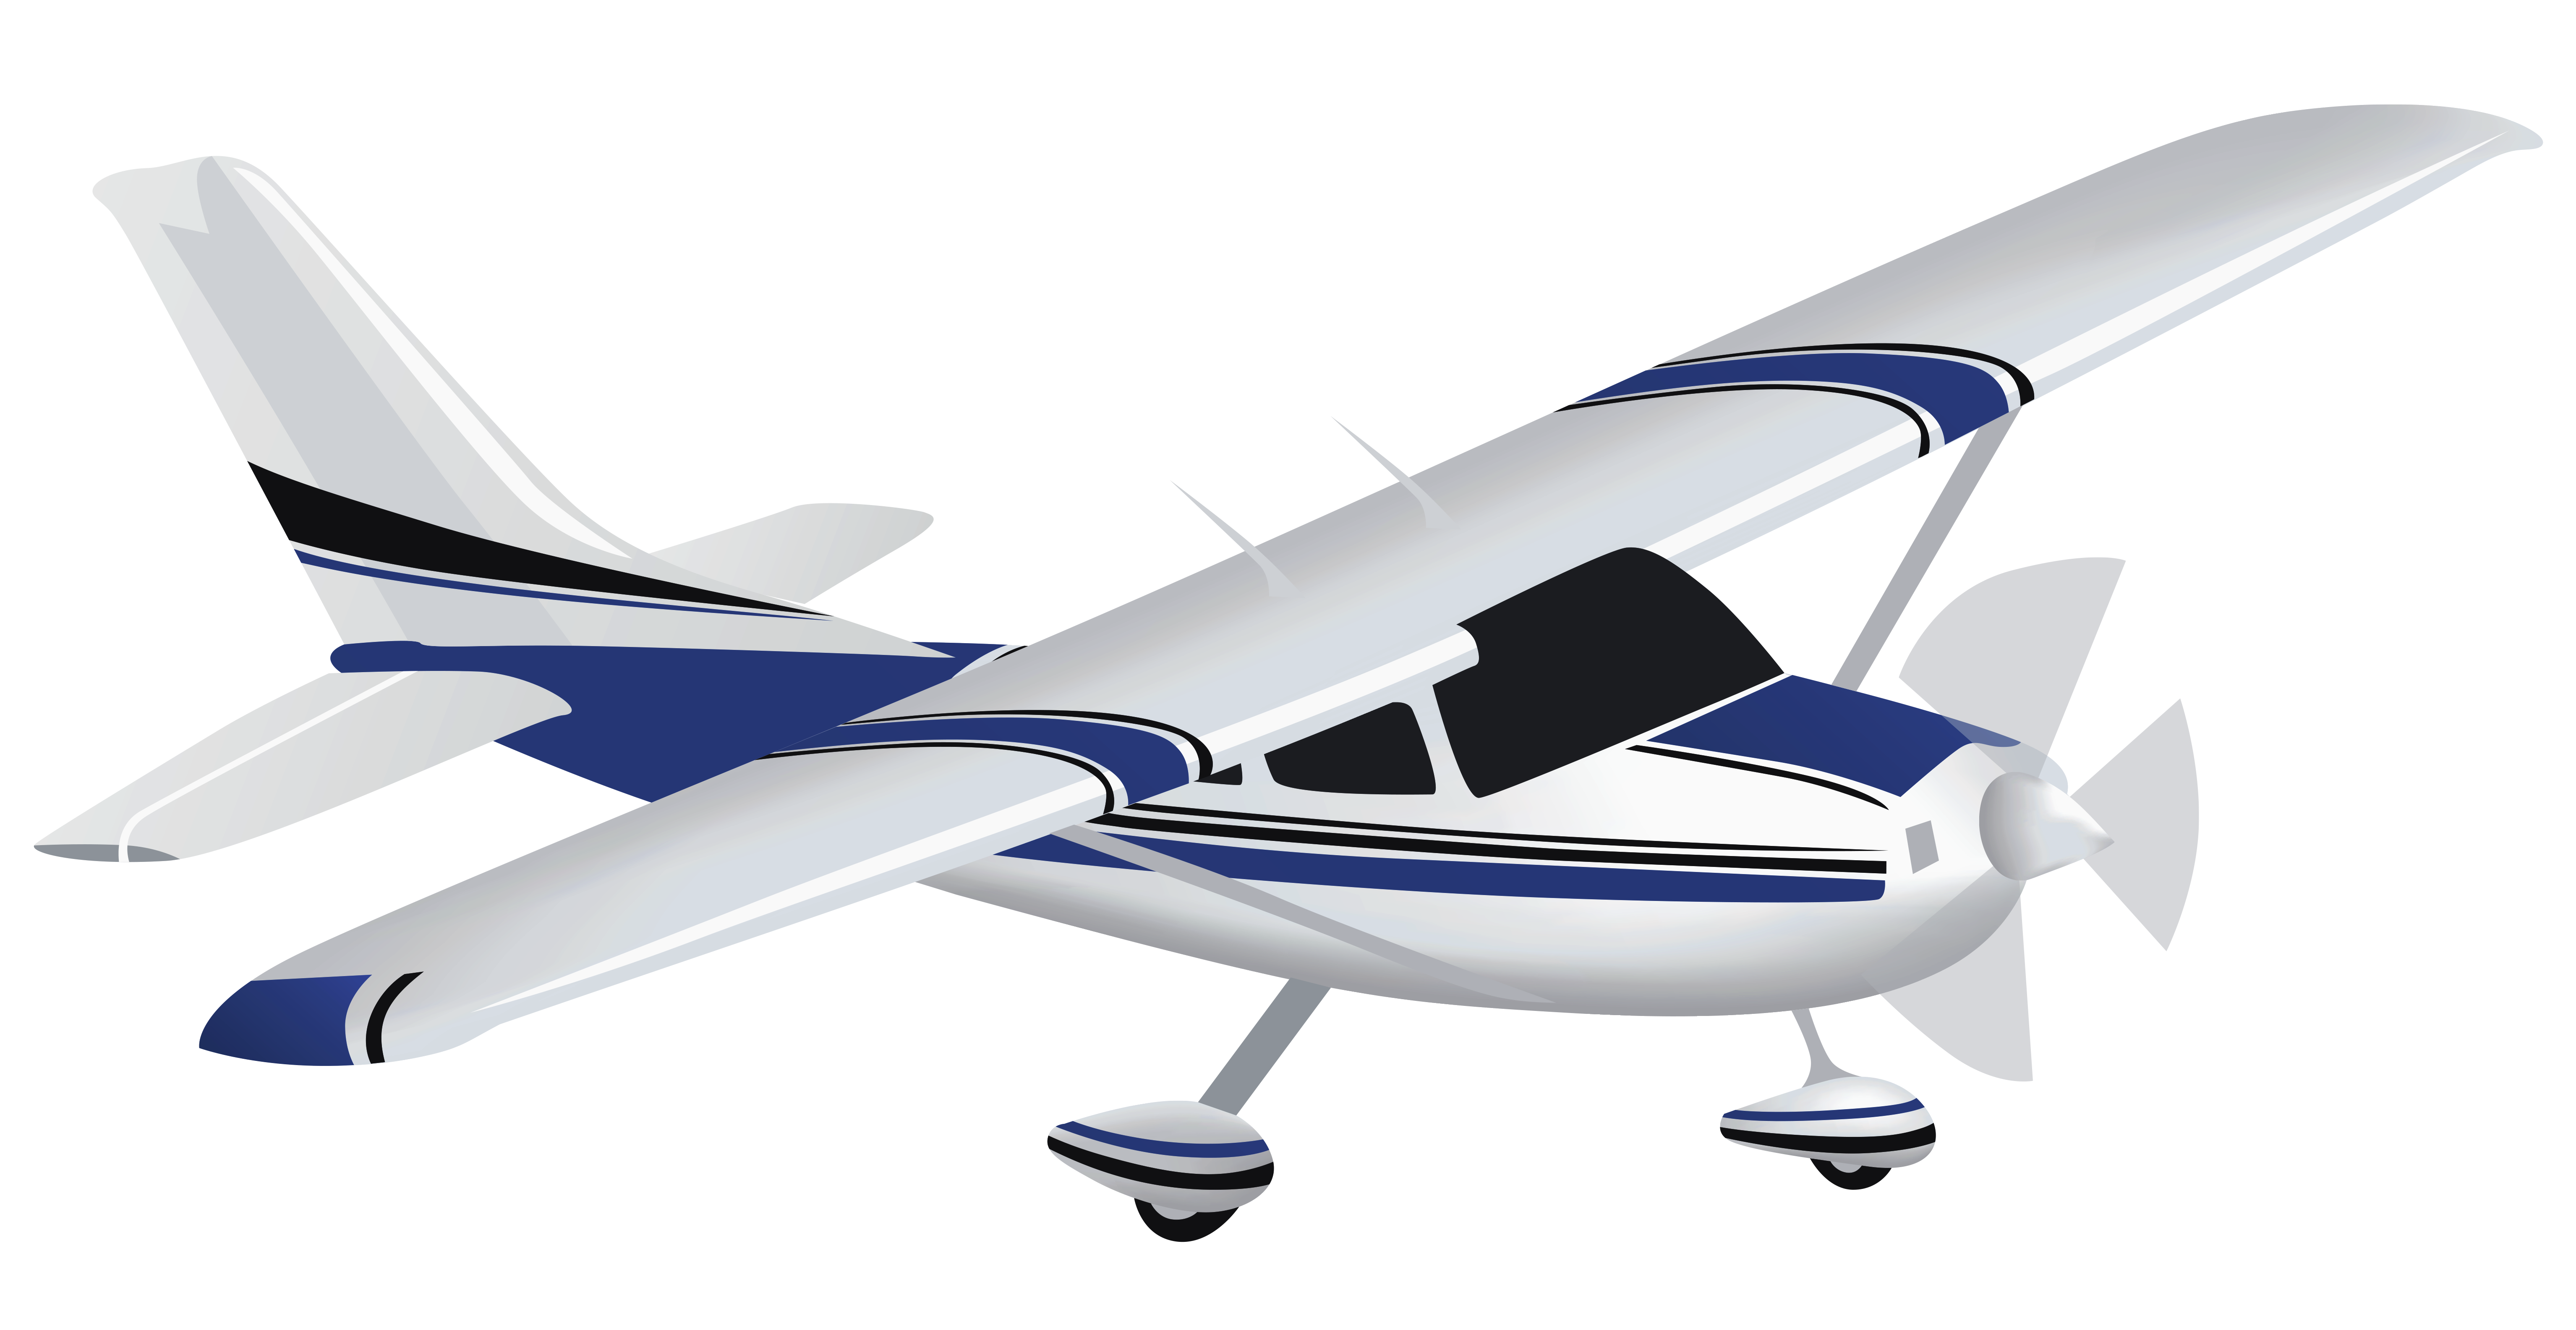 Plane clipart graphic Plane Transparent PNG Clipart | Gallery Yopriceville - High-Quality ... graphic